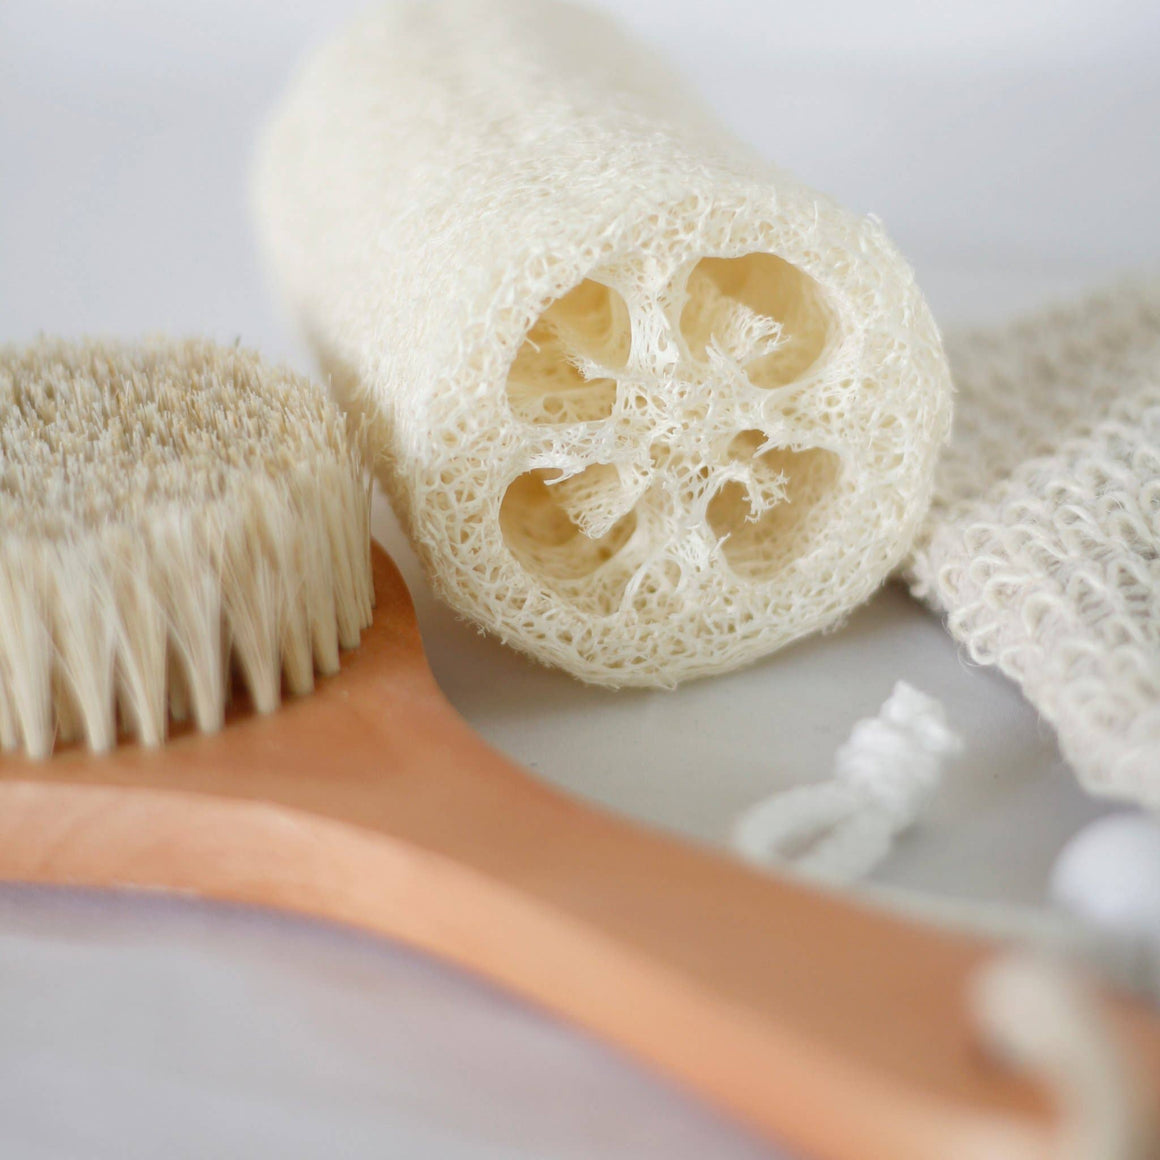 Bestowed Essentials - Loofah Sponge